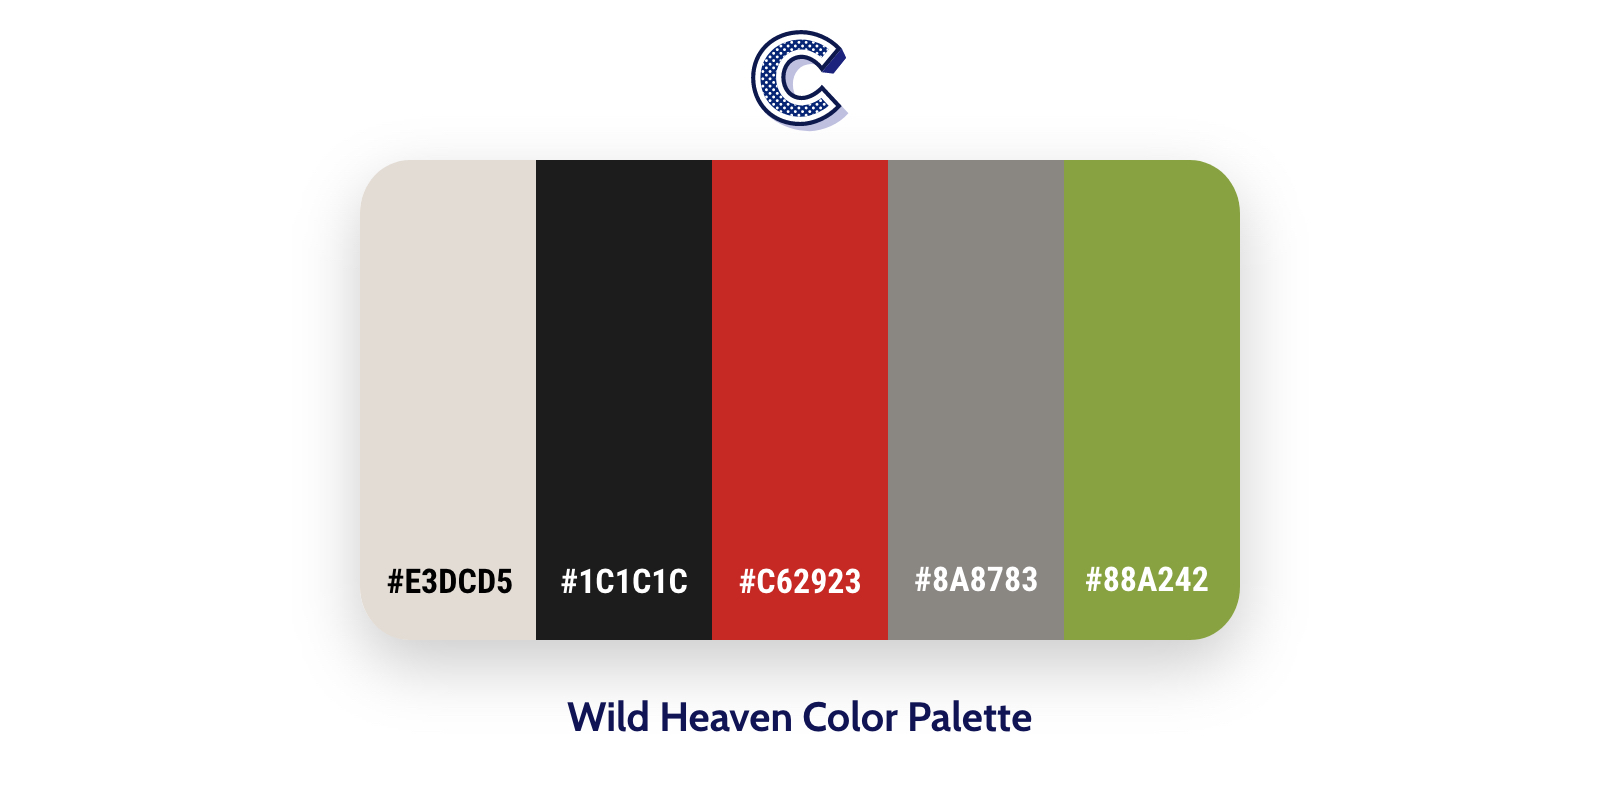 the featured image of wild heaven color palette